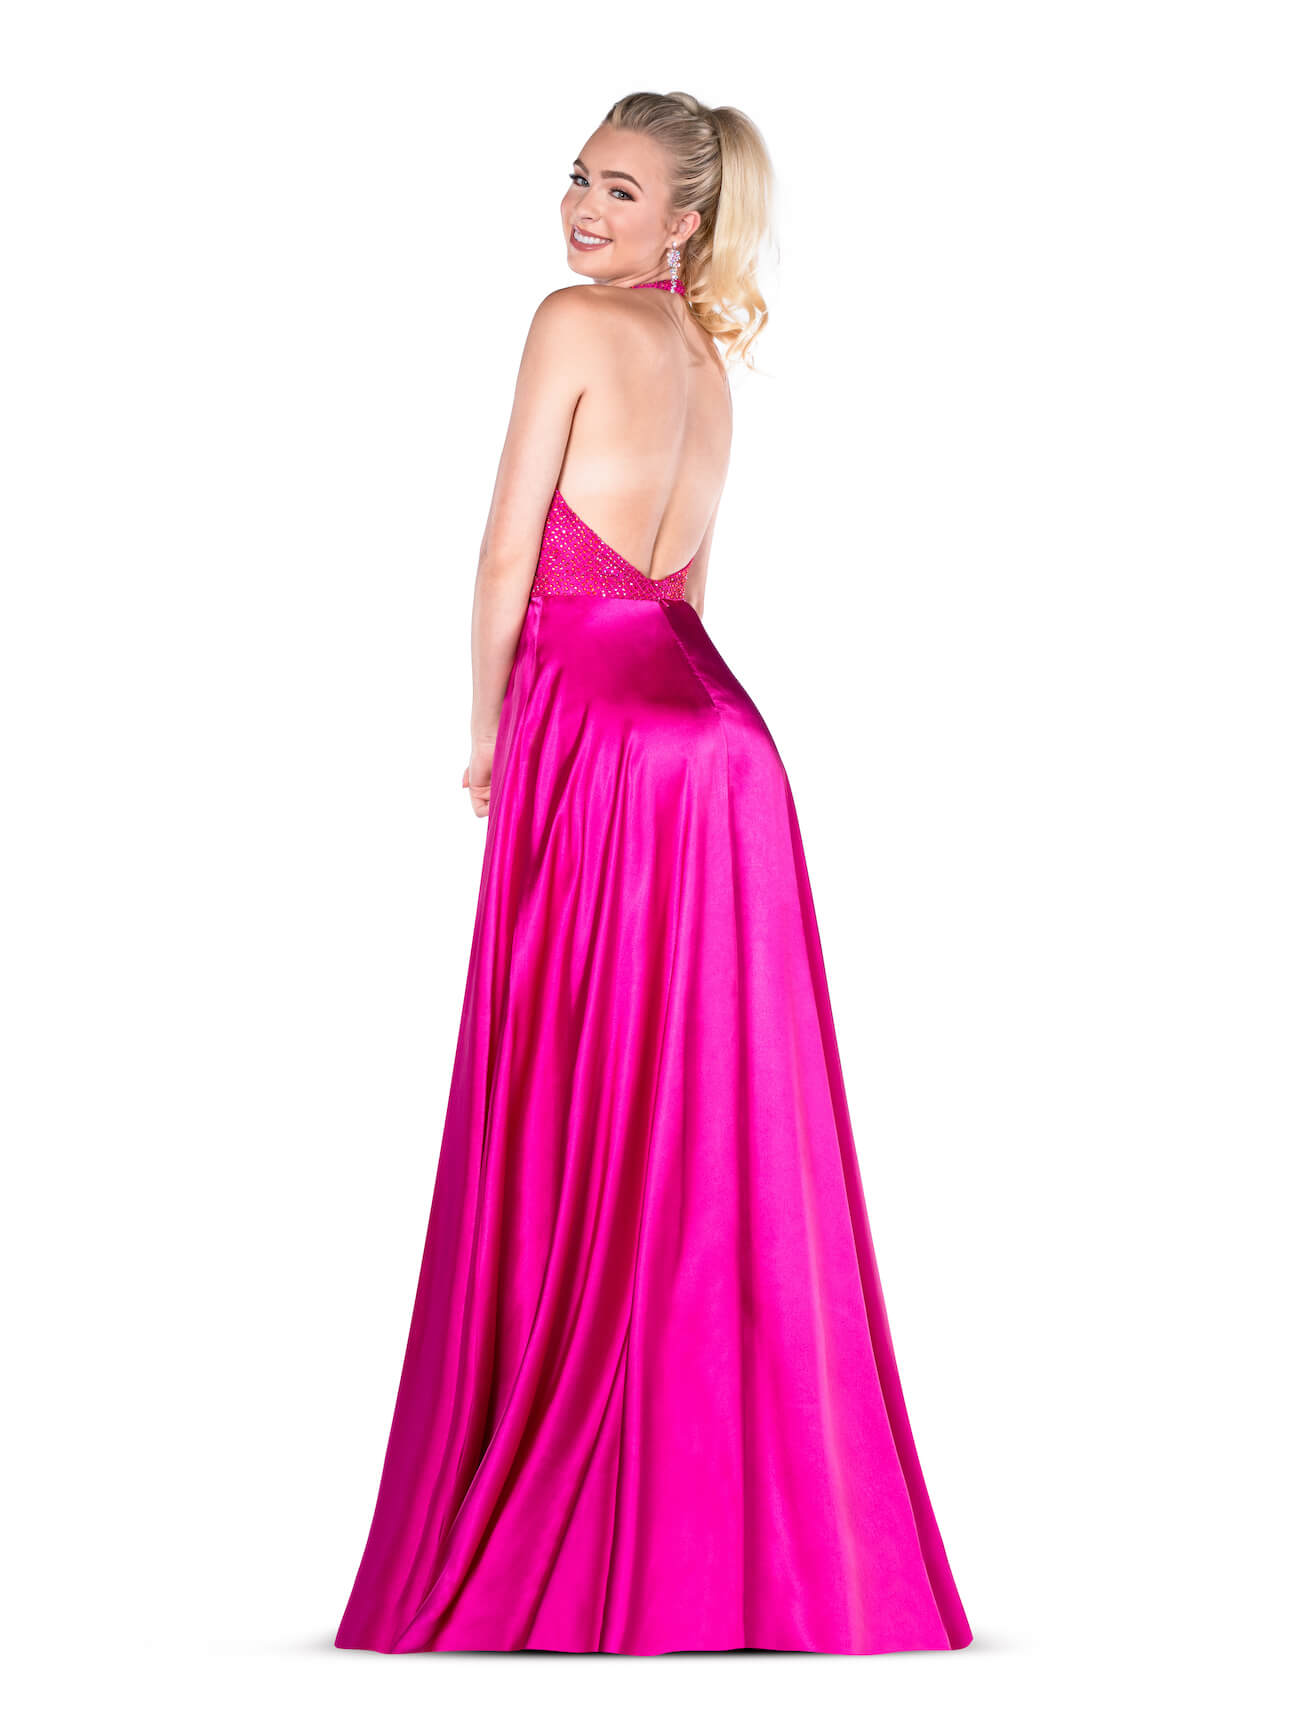 Vienna Purple Size 2 A-line Backless Side slit Dress on Queenly